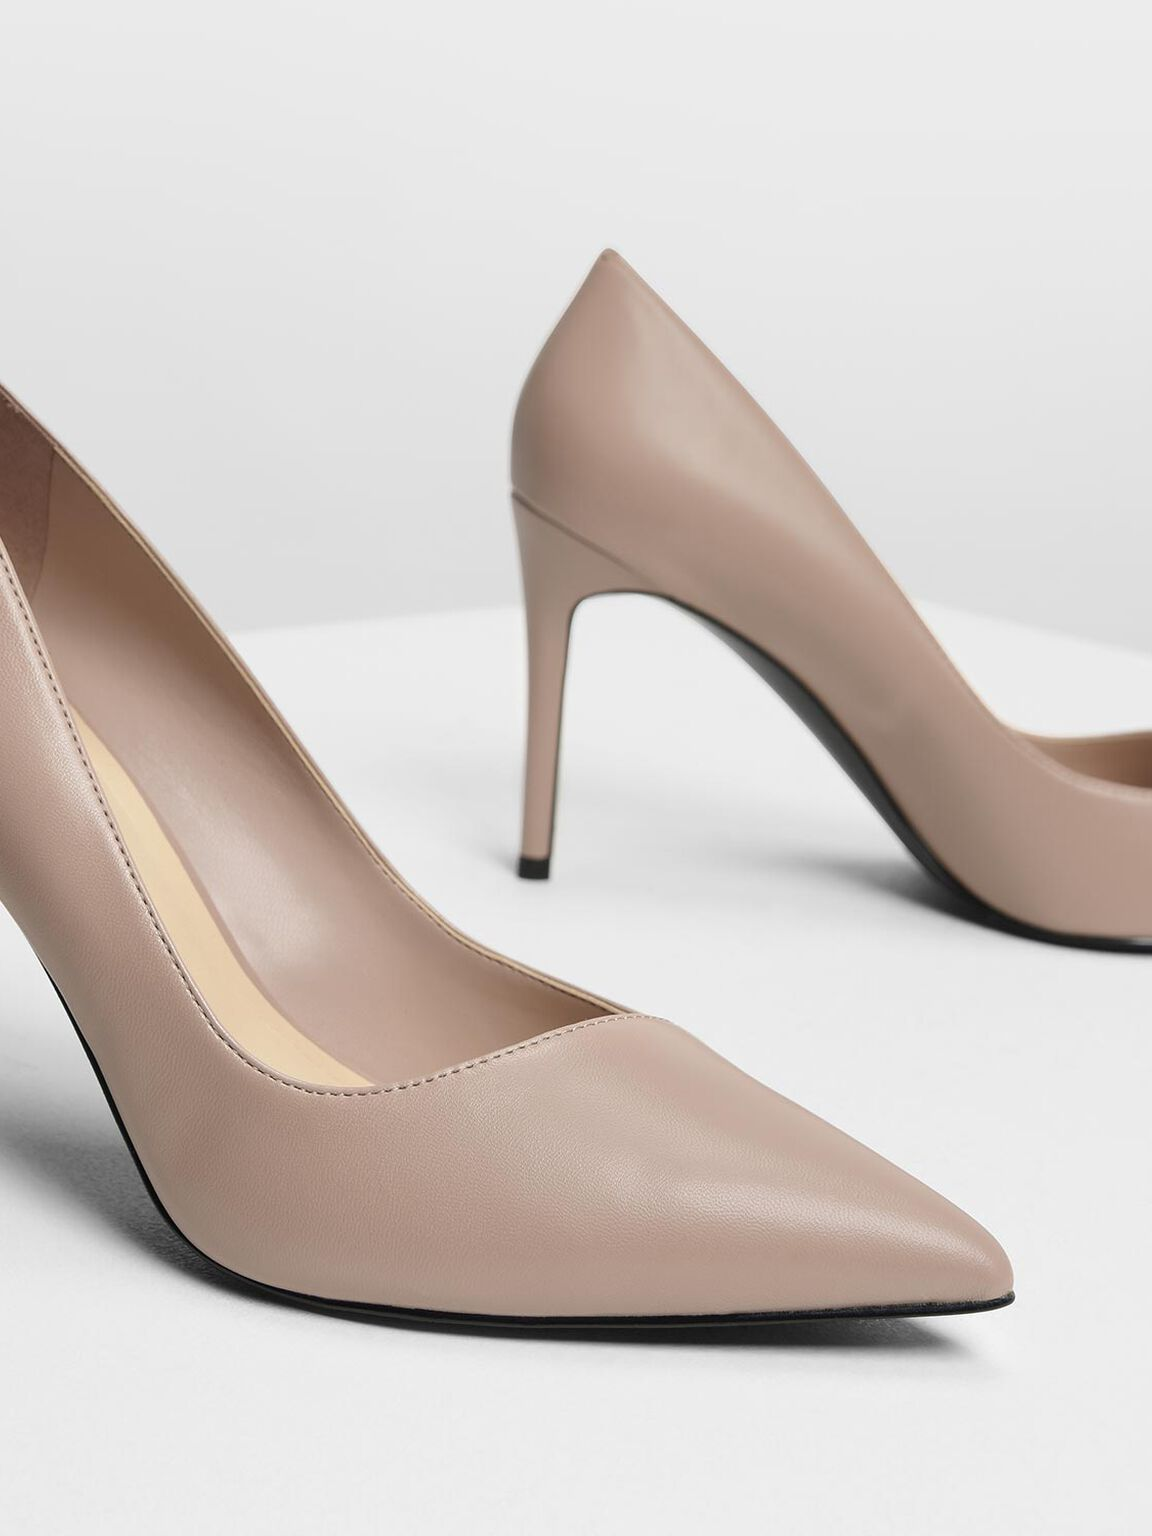 Asymmetrical Cut Stiletto Pumps, Nude, hi-res